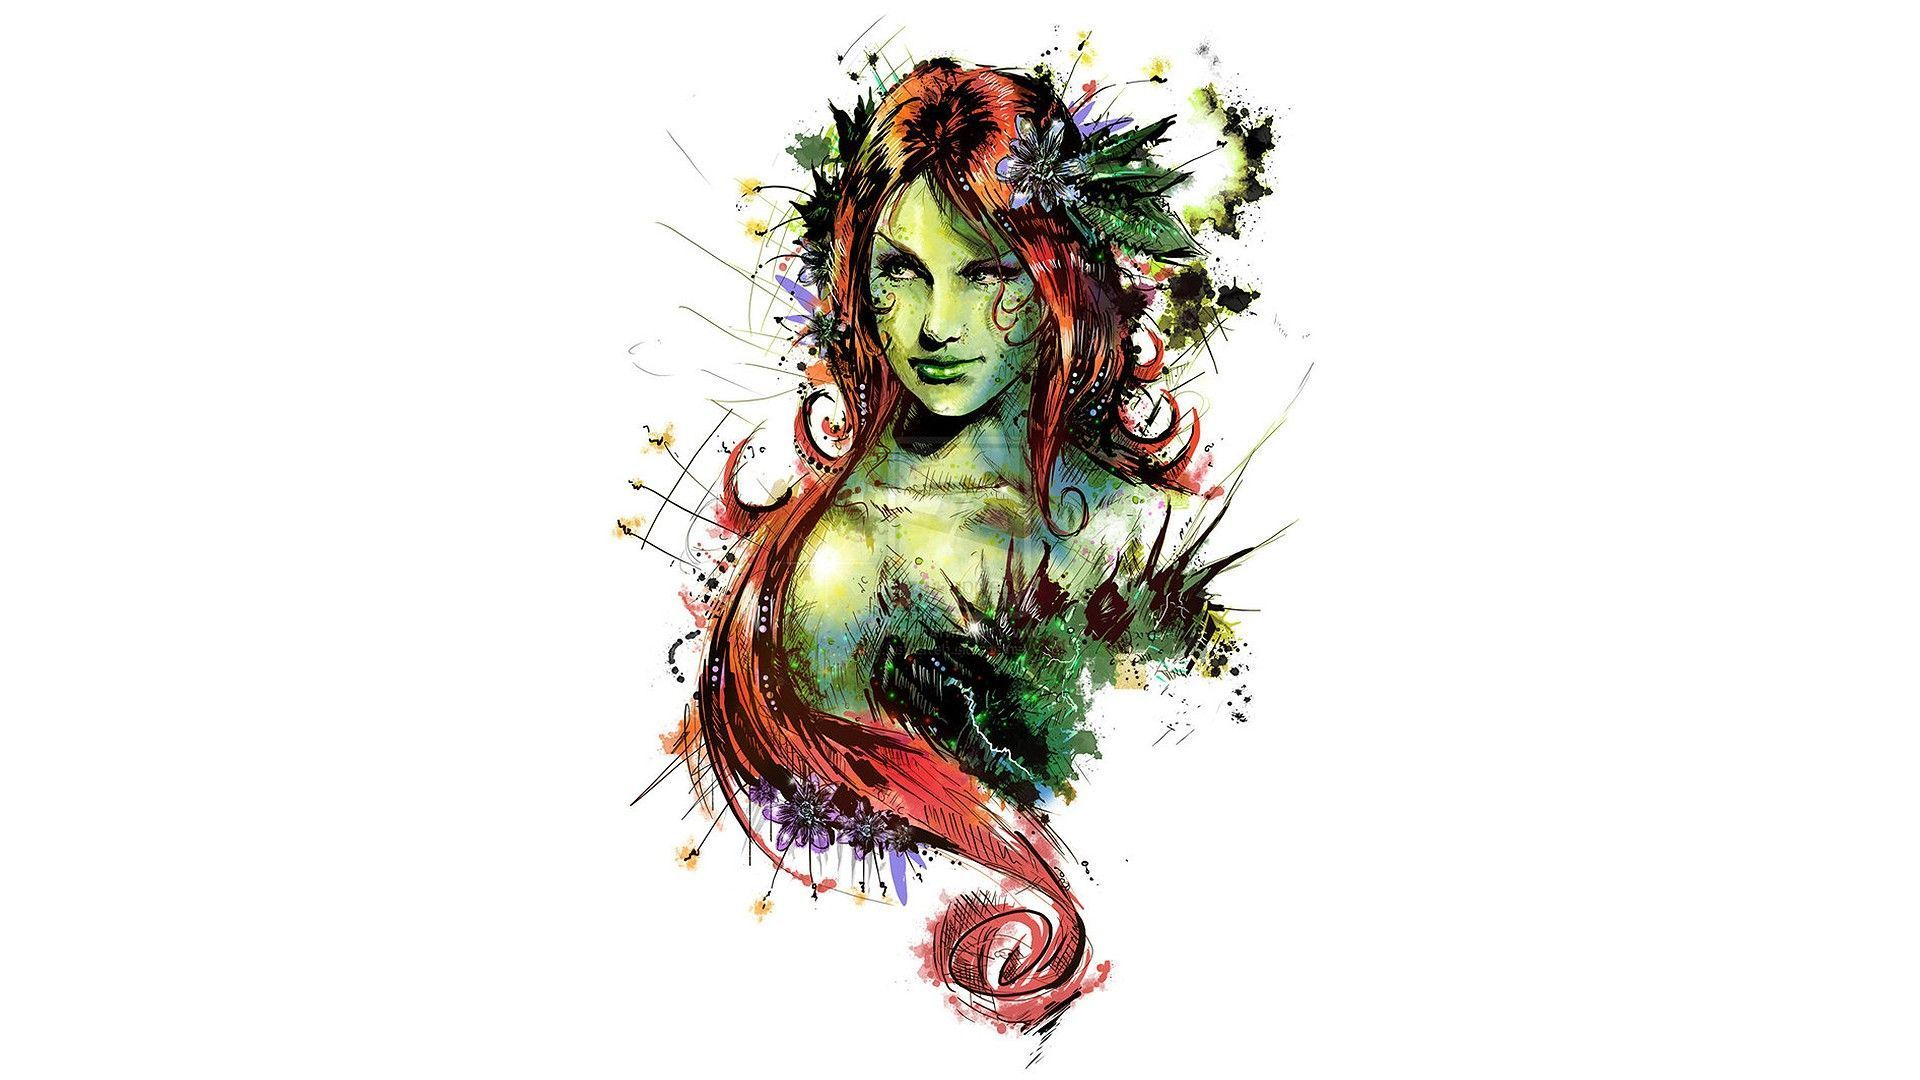 V.78: Poison Ivy Wallpapers, HD Images of Poison Ivy, Ultra HD 4K ...